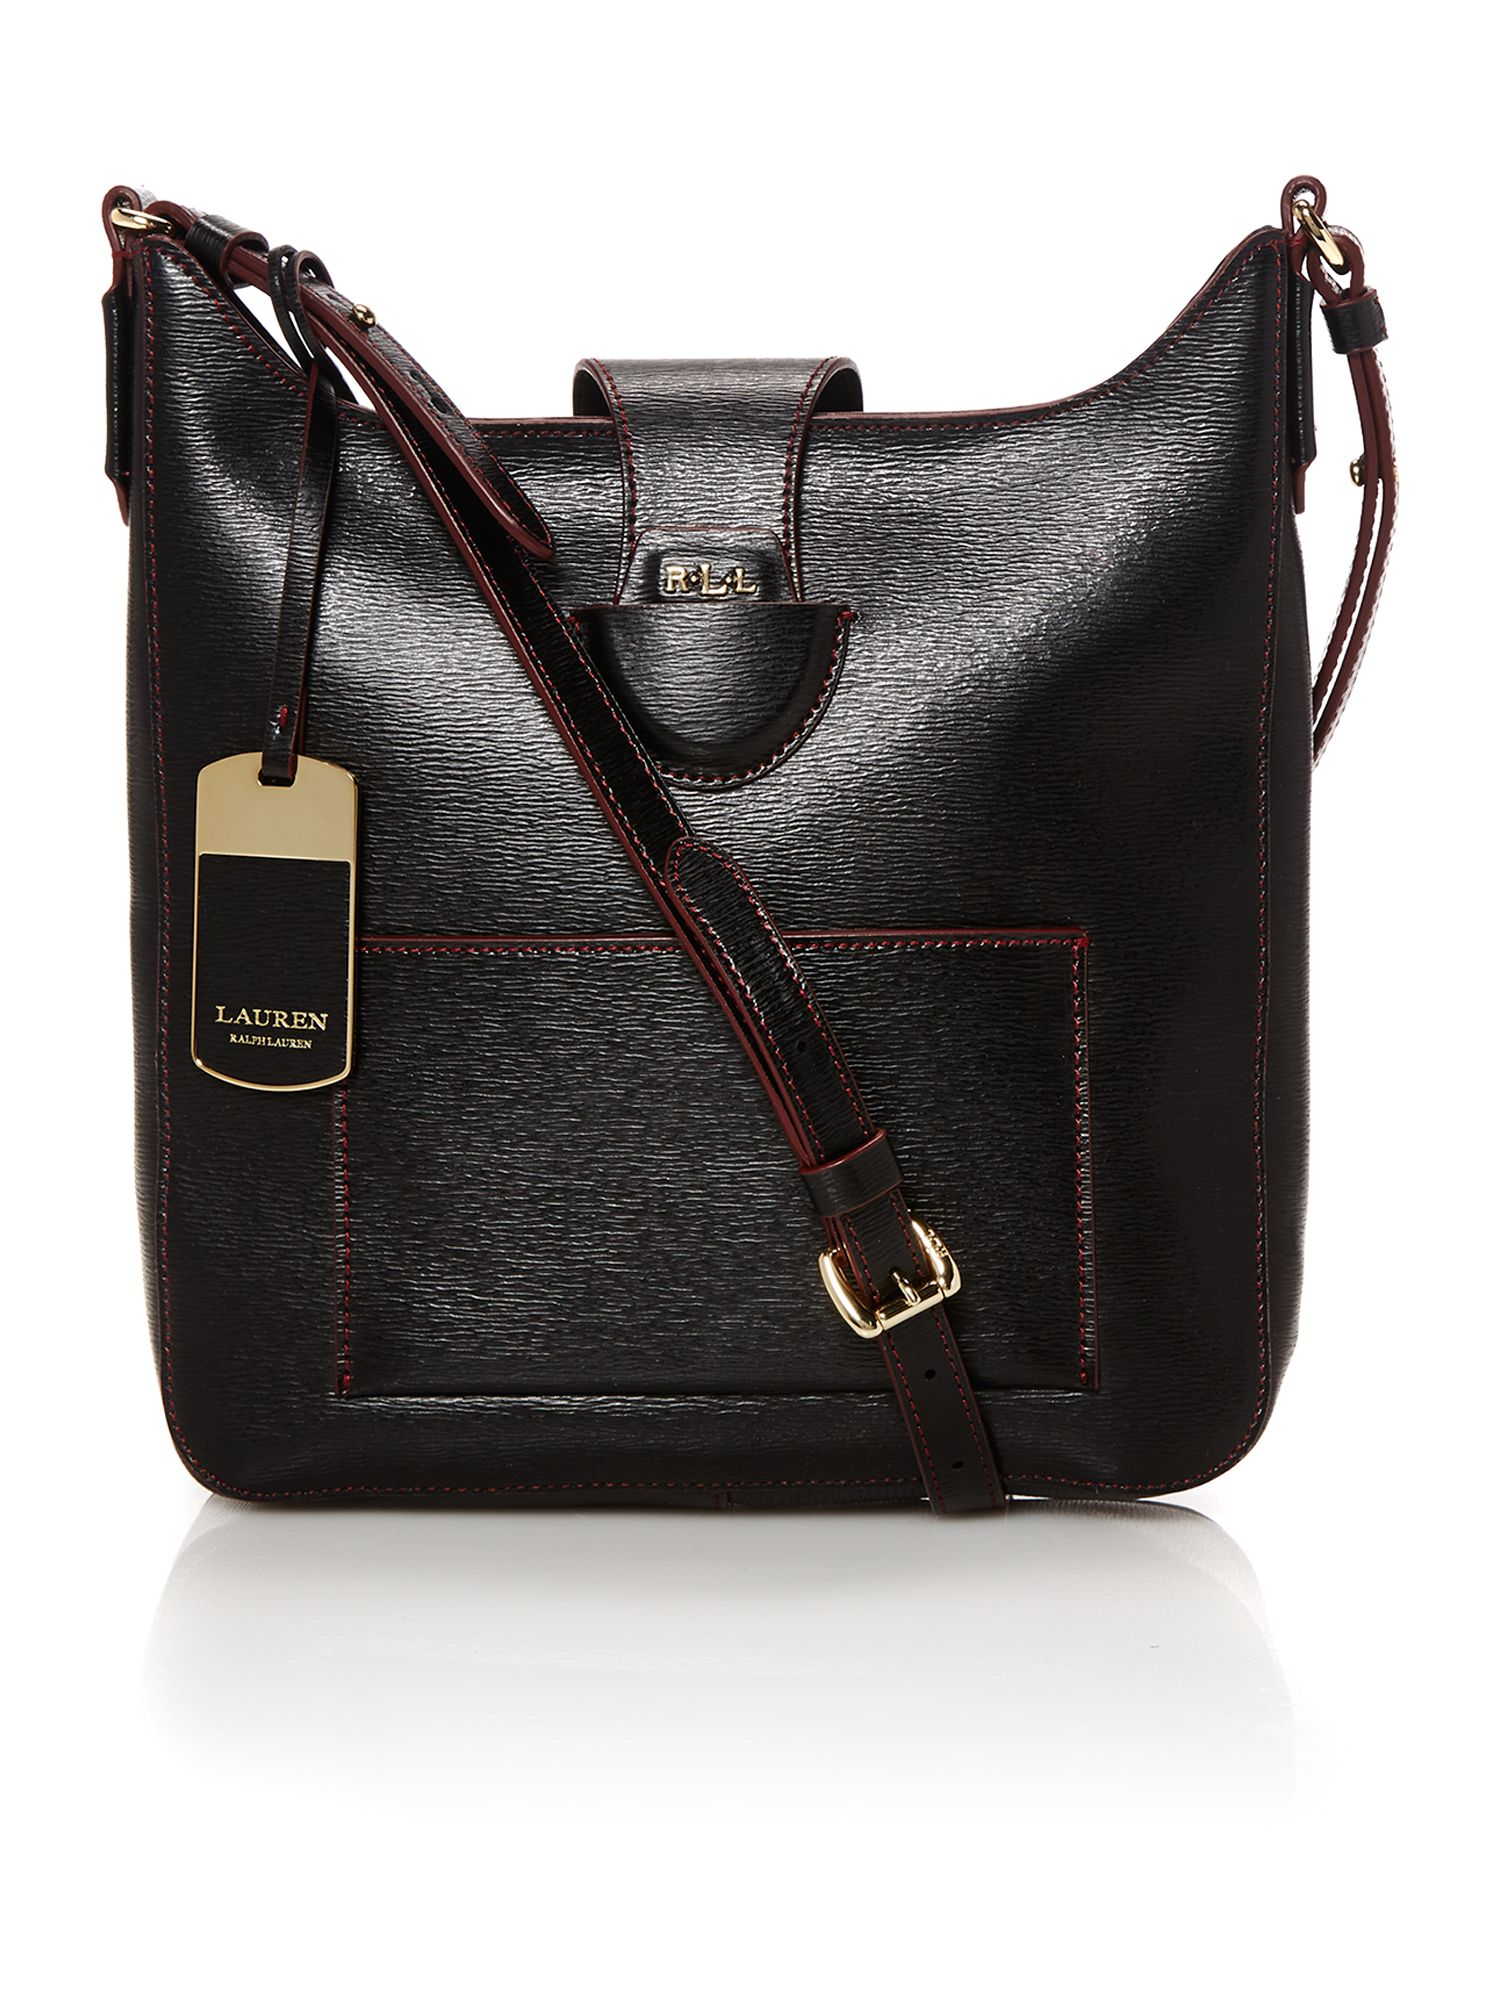 Tate black crossbody bag